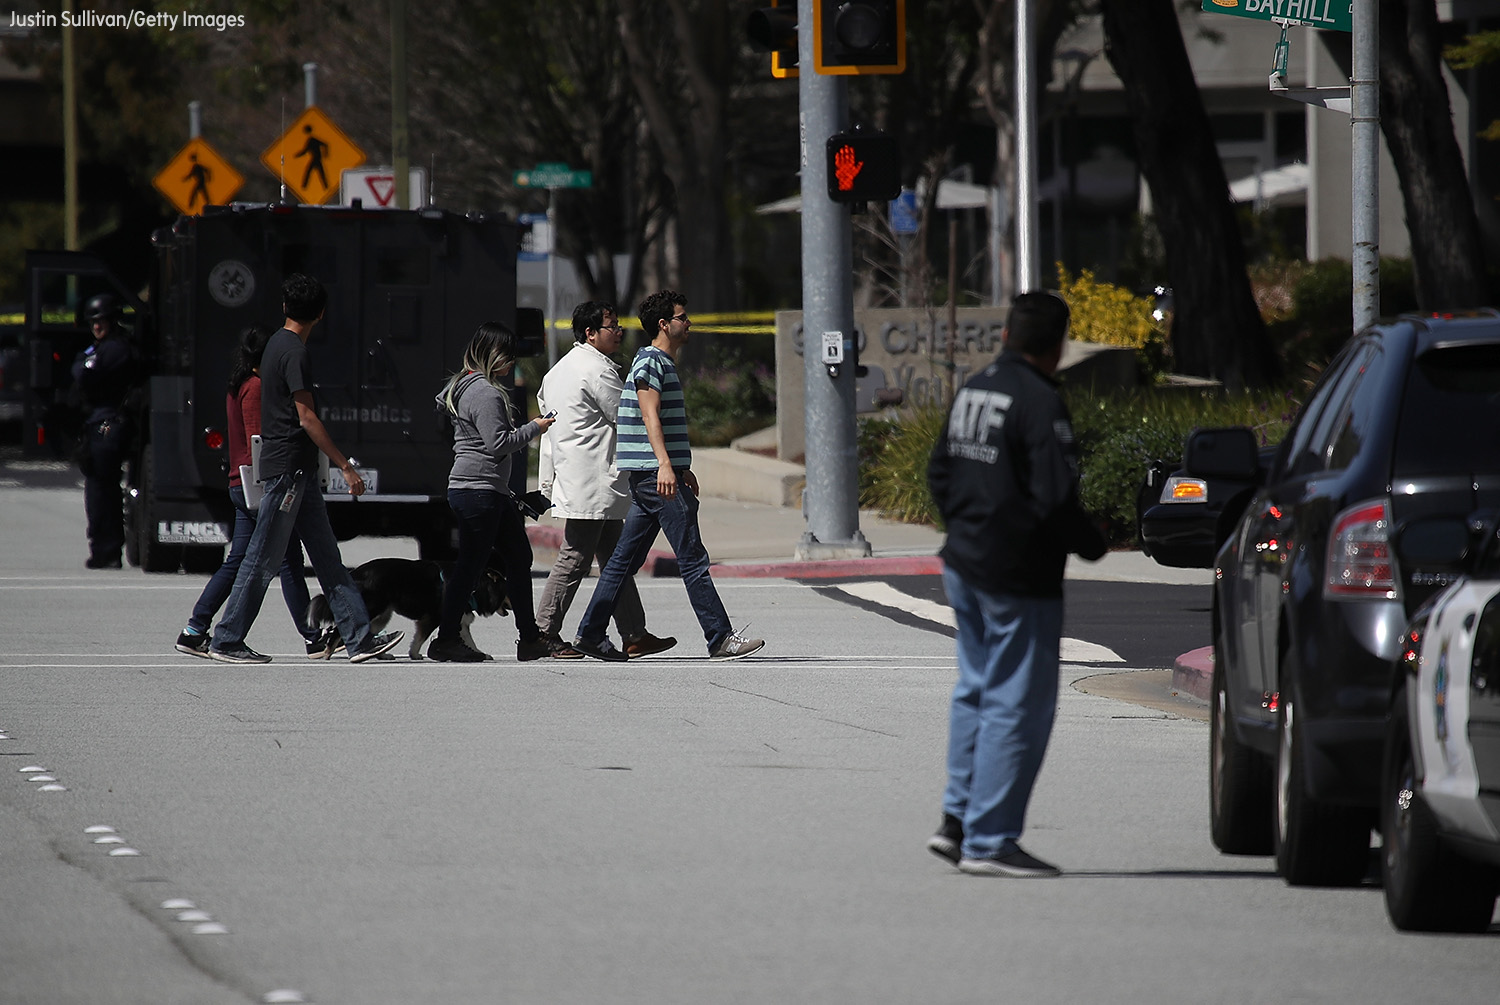 <div class='meta'><div class='origin-logo' data-origin='none'></div><span class='caption-text' data-credit='Justin Sullivan/Getty Images'>Police look on as employees walk across the street outside of the YouTube headquarters on April 3, 2018 in San Bruno, California.</span></div>